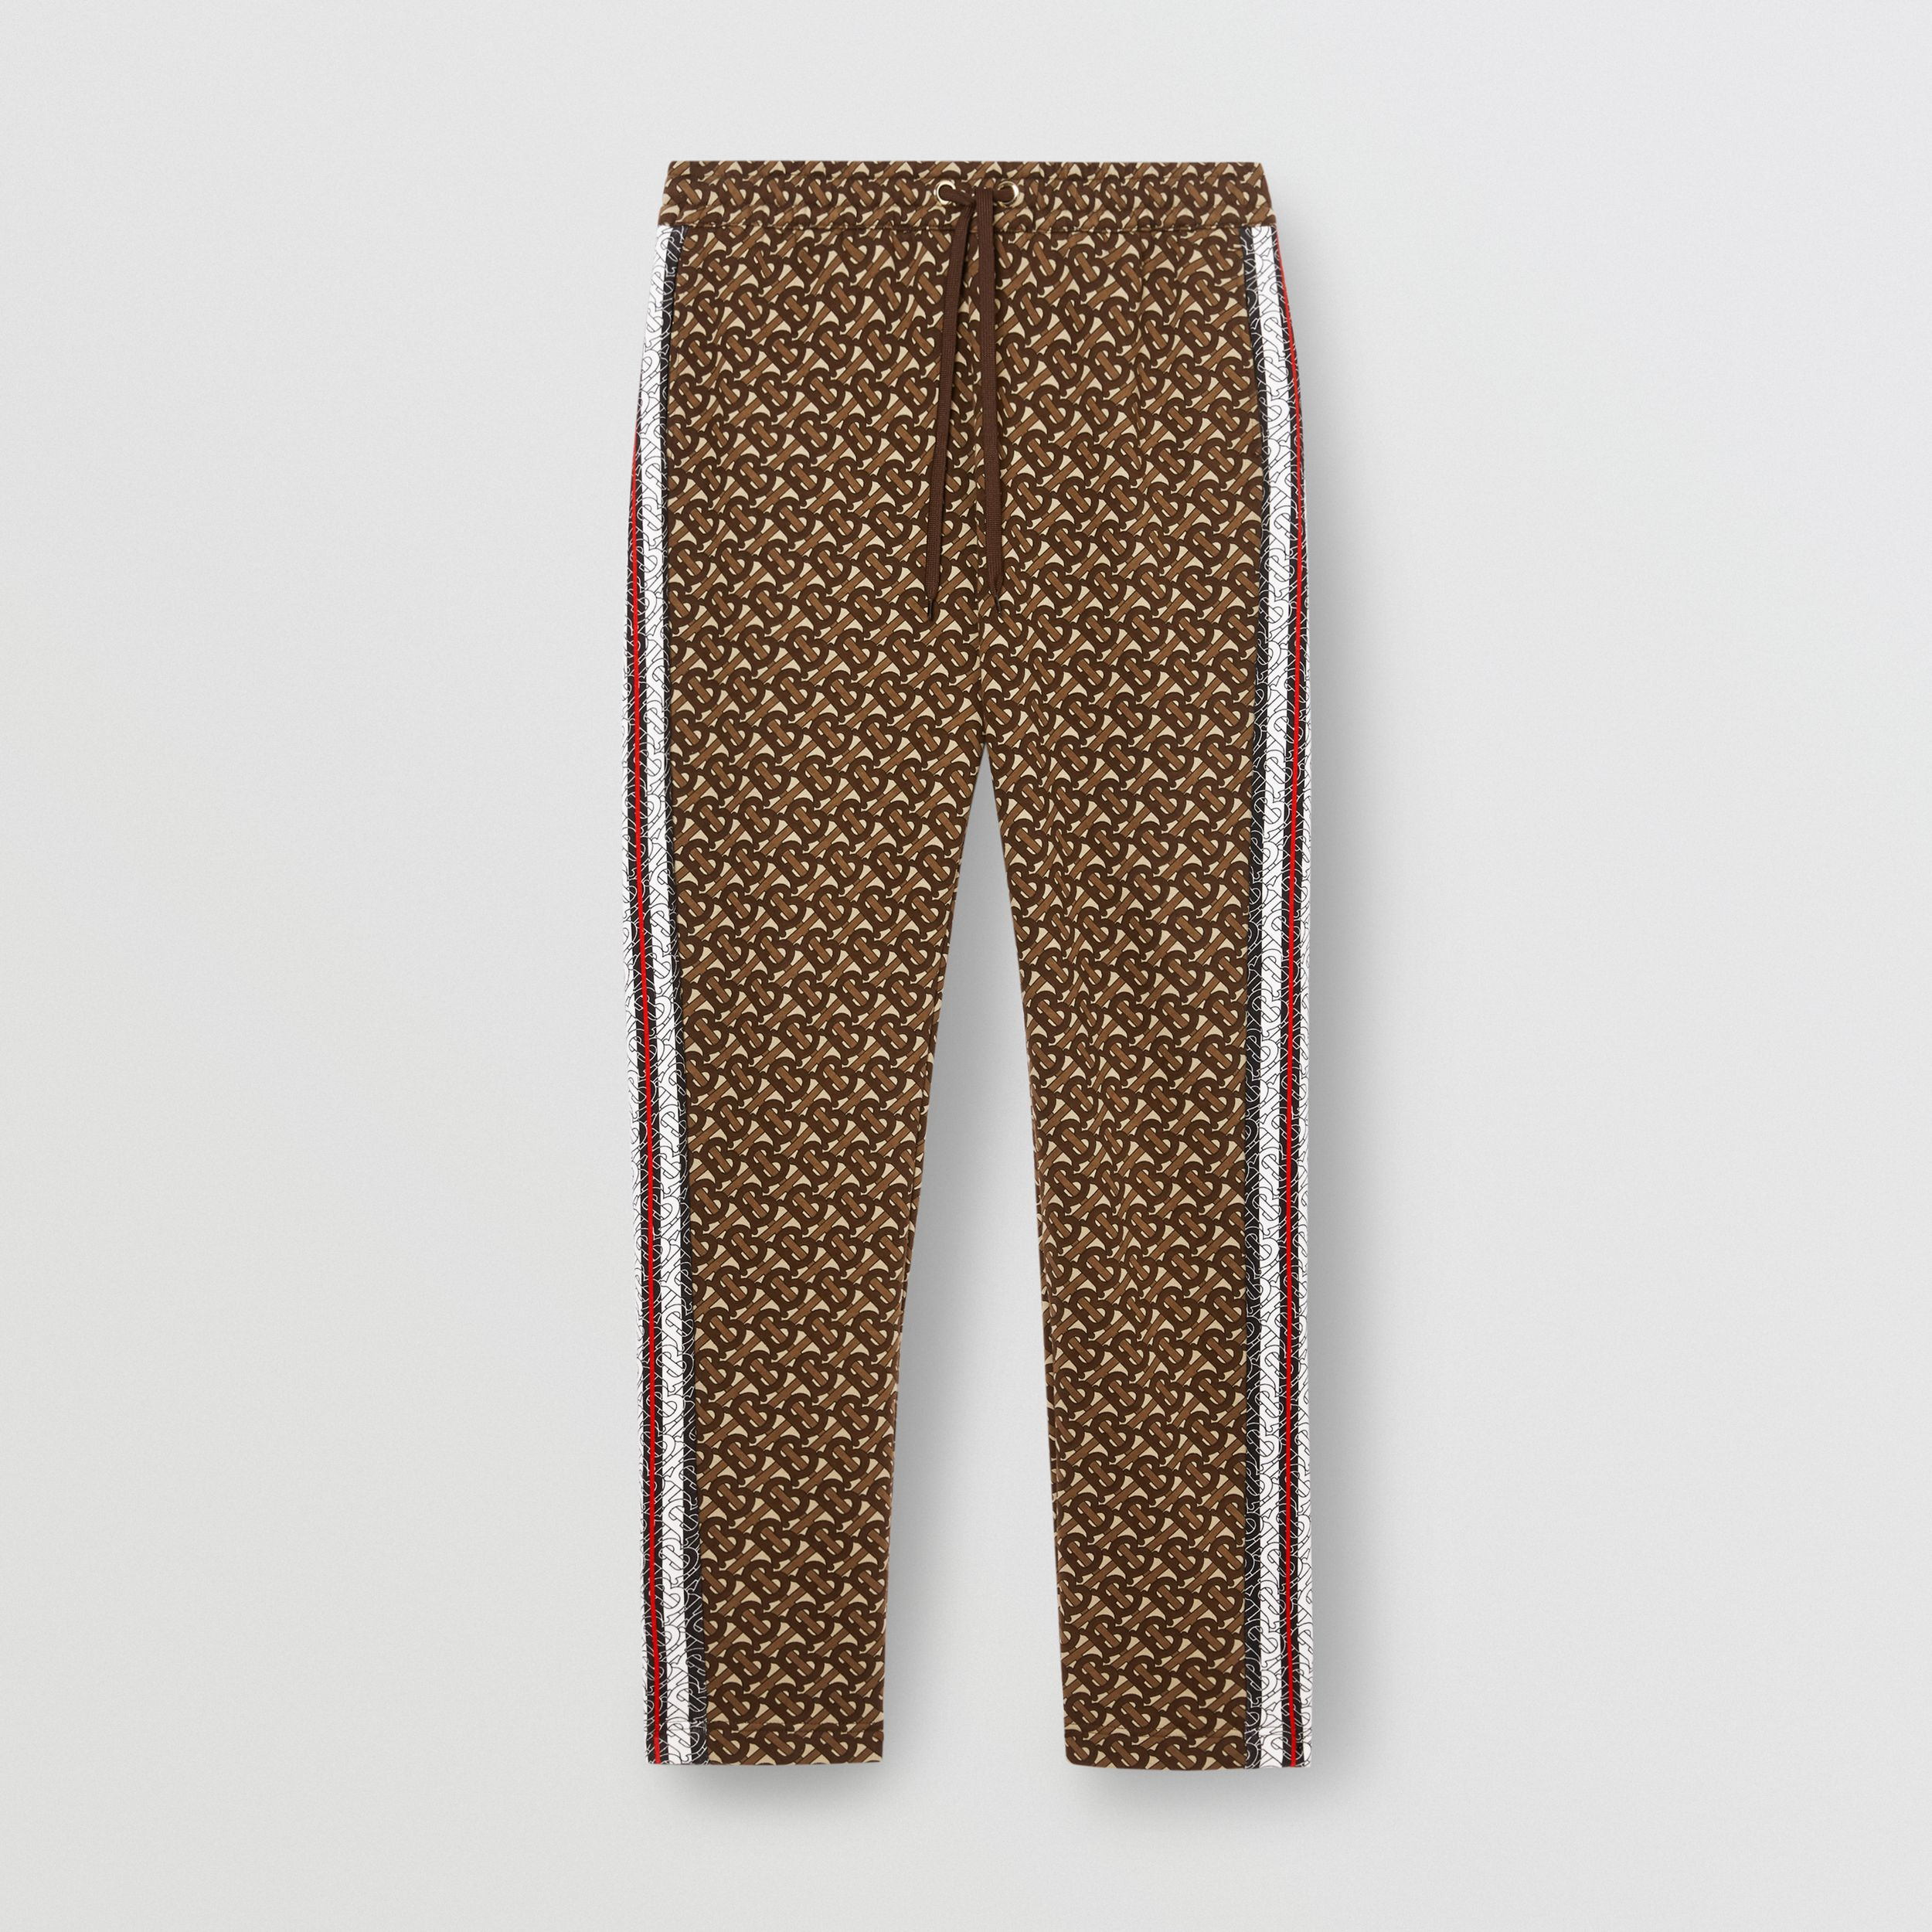 Monogram Stripe Print Cotton Jogging Pants in Bridle Brown - Men | Burberry - 4